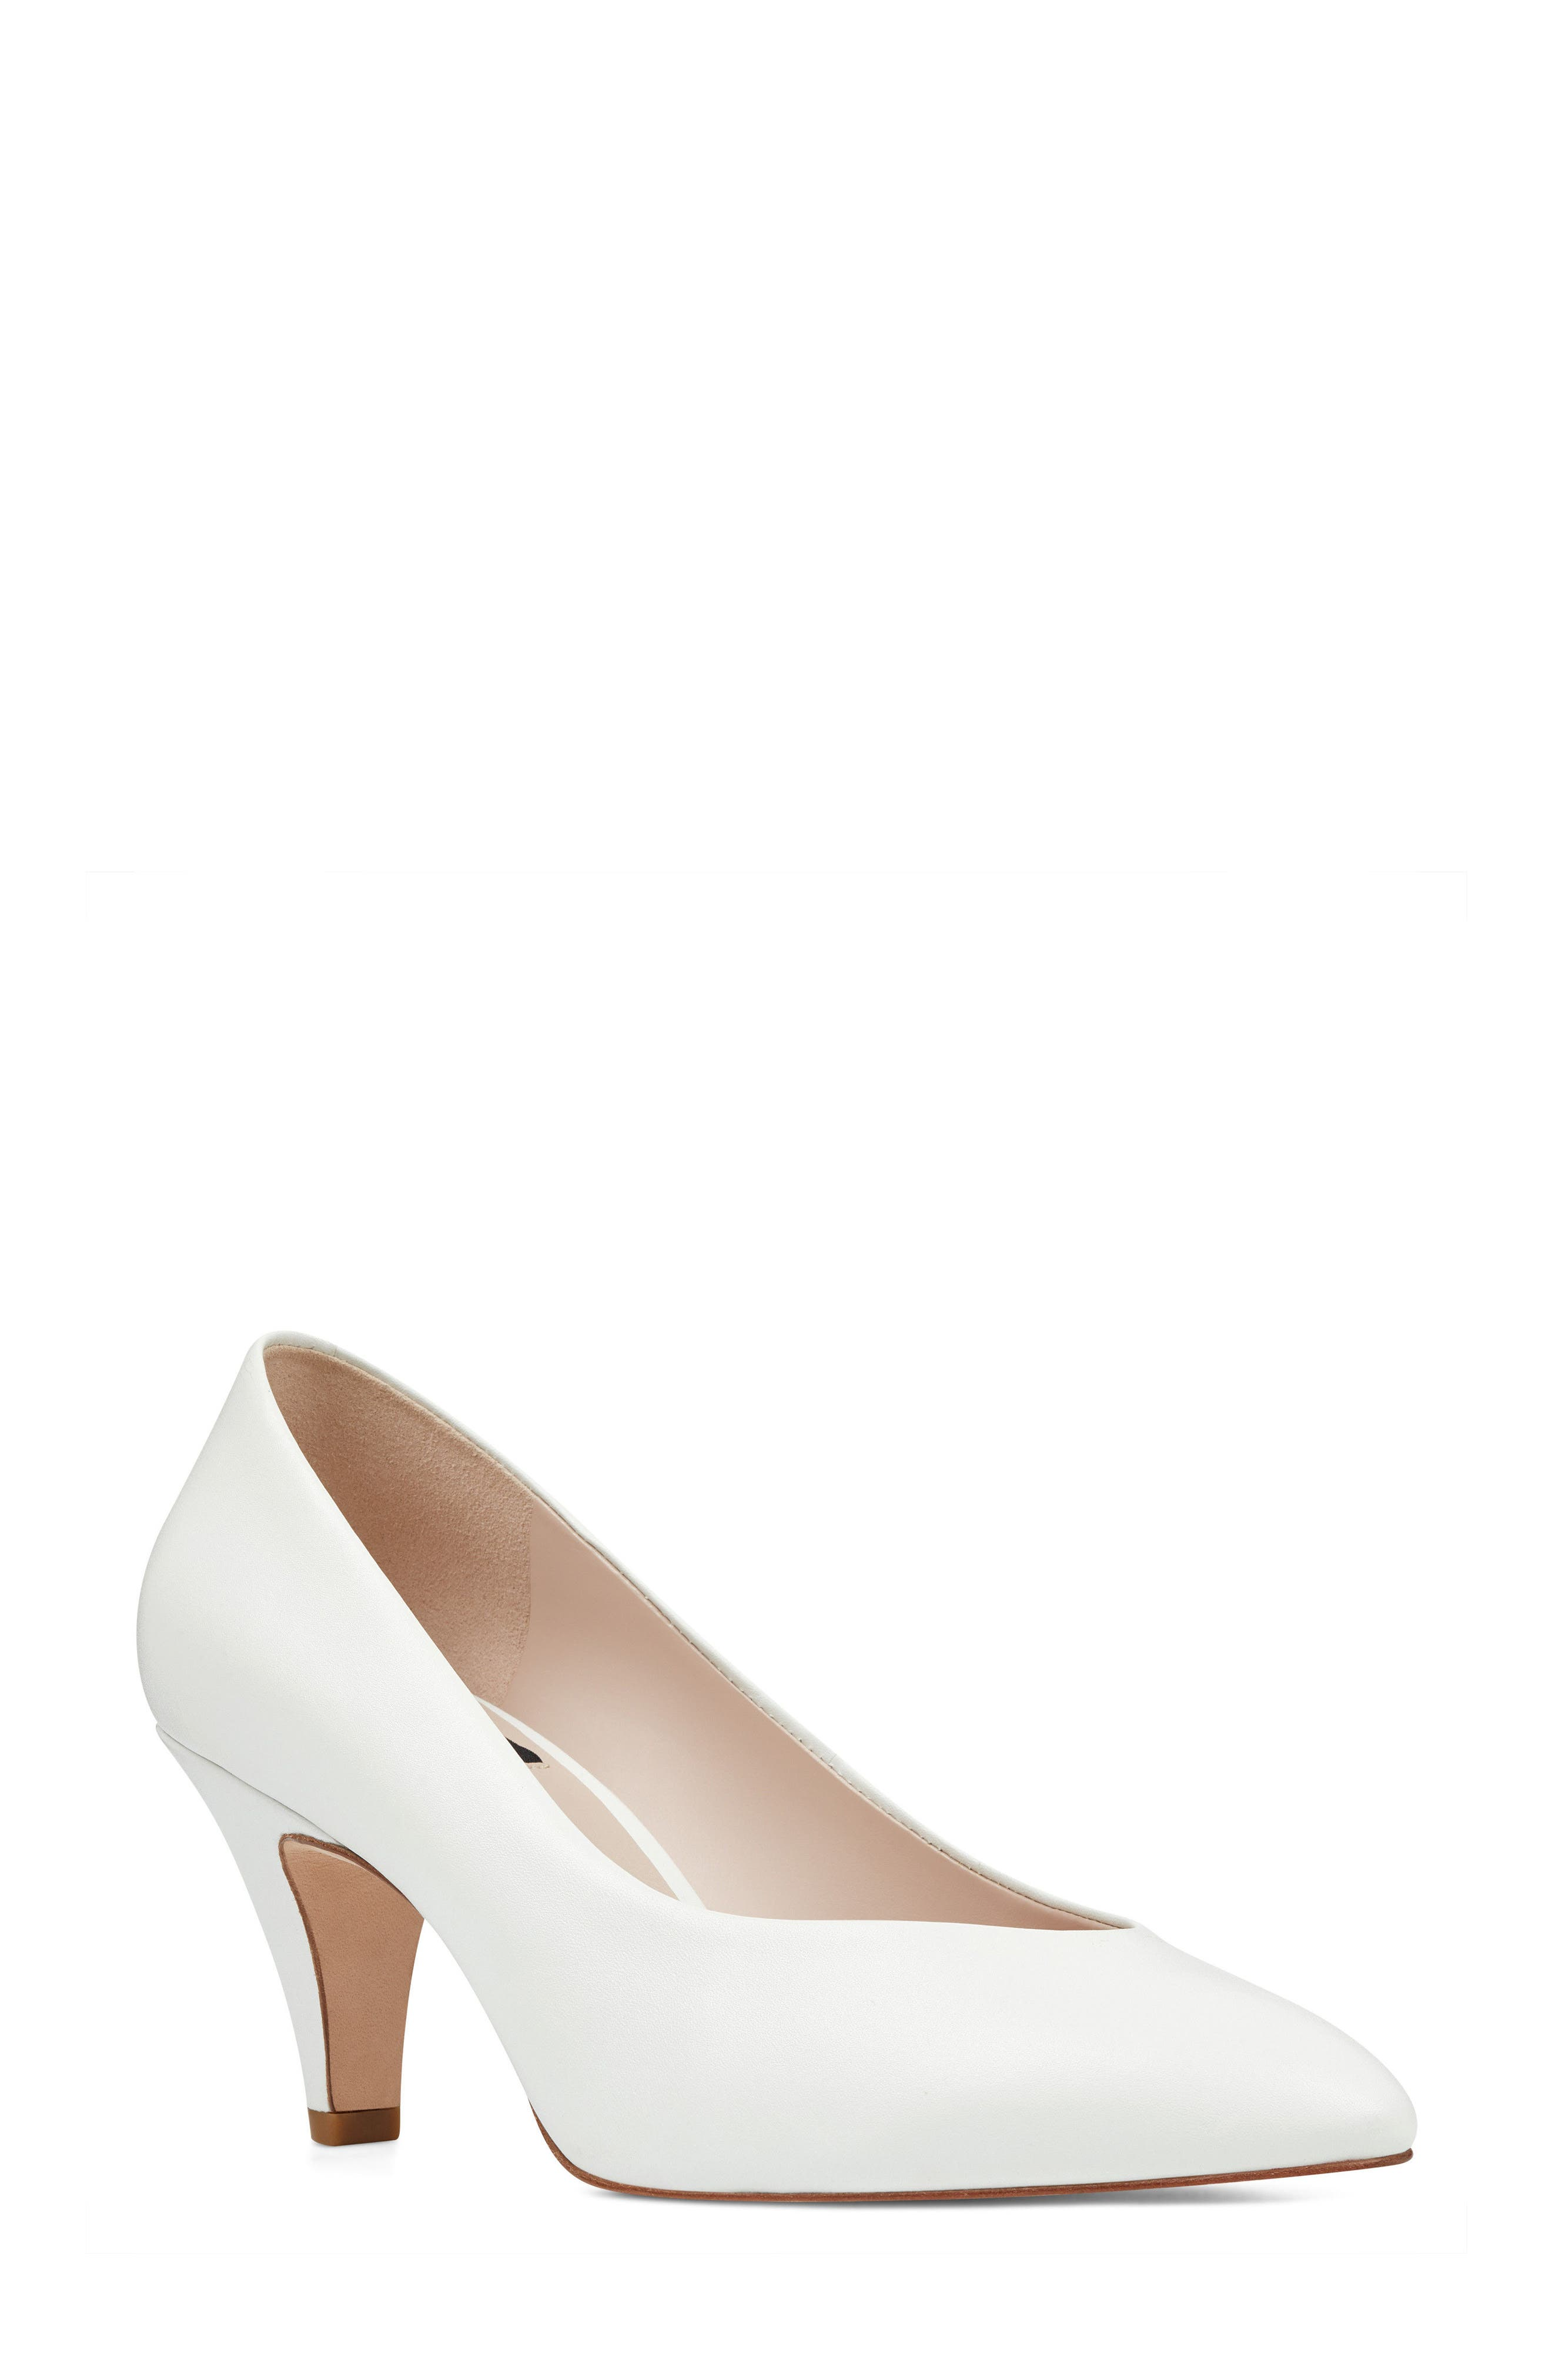 Faith - 40th Anniversary Capsule Collection Pump,                             Main thumbnail 1, color,                             White Leather